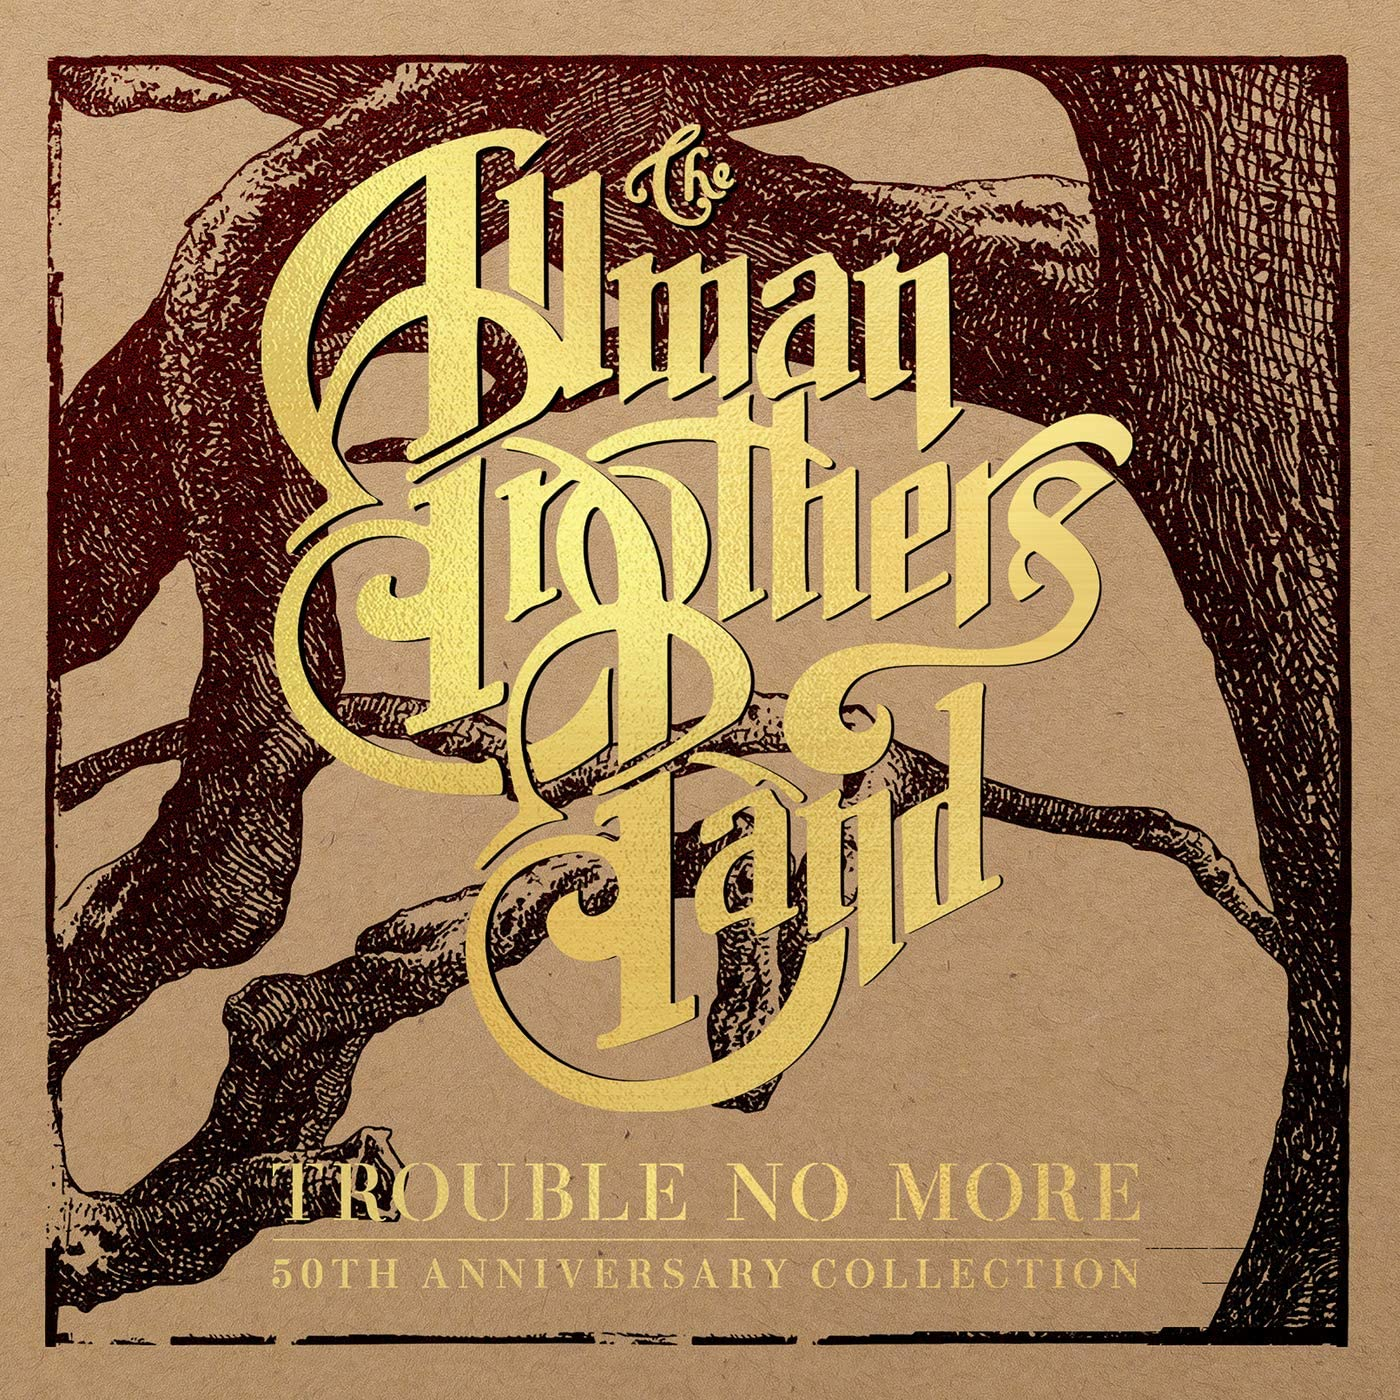 Allman Brothers Band, The/Trouble No More 1969-2019 (5CD Set) [CD]